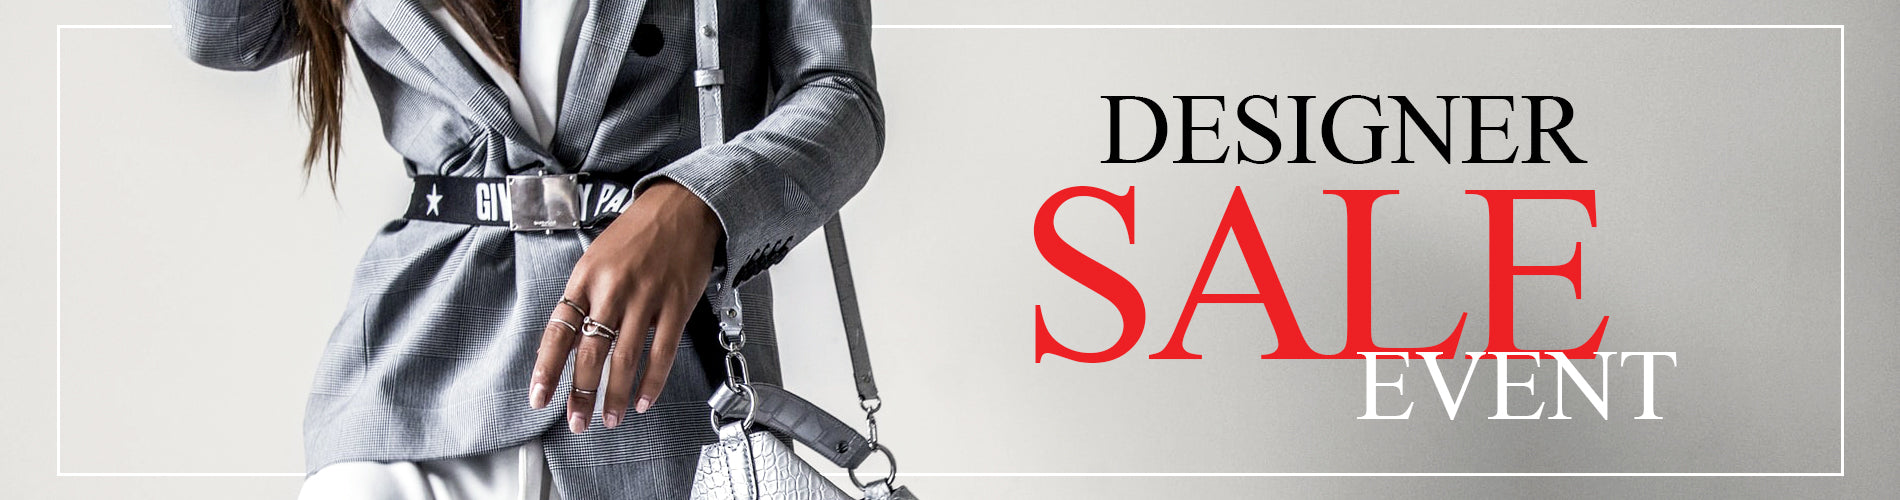 Shop our coveted Designer Sale Event going on June 3, 2021